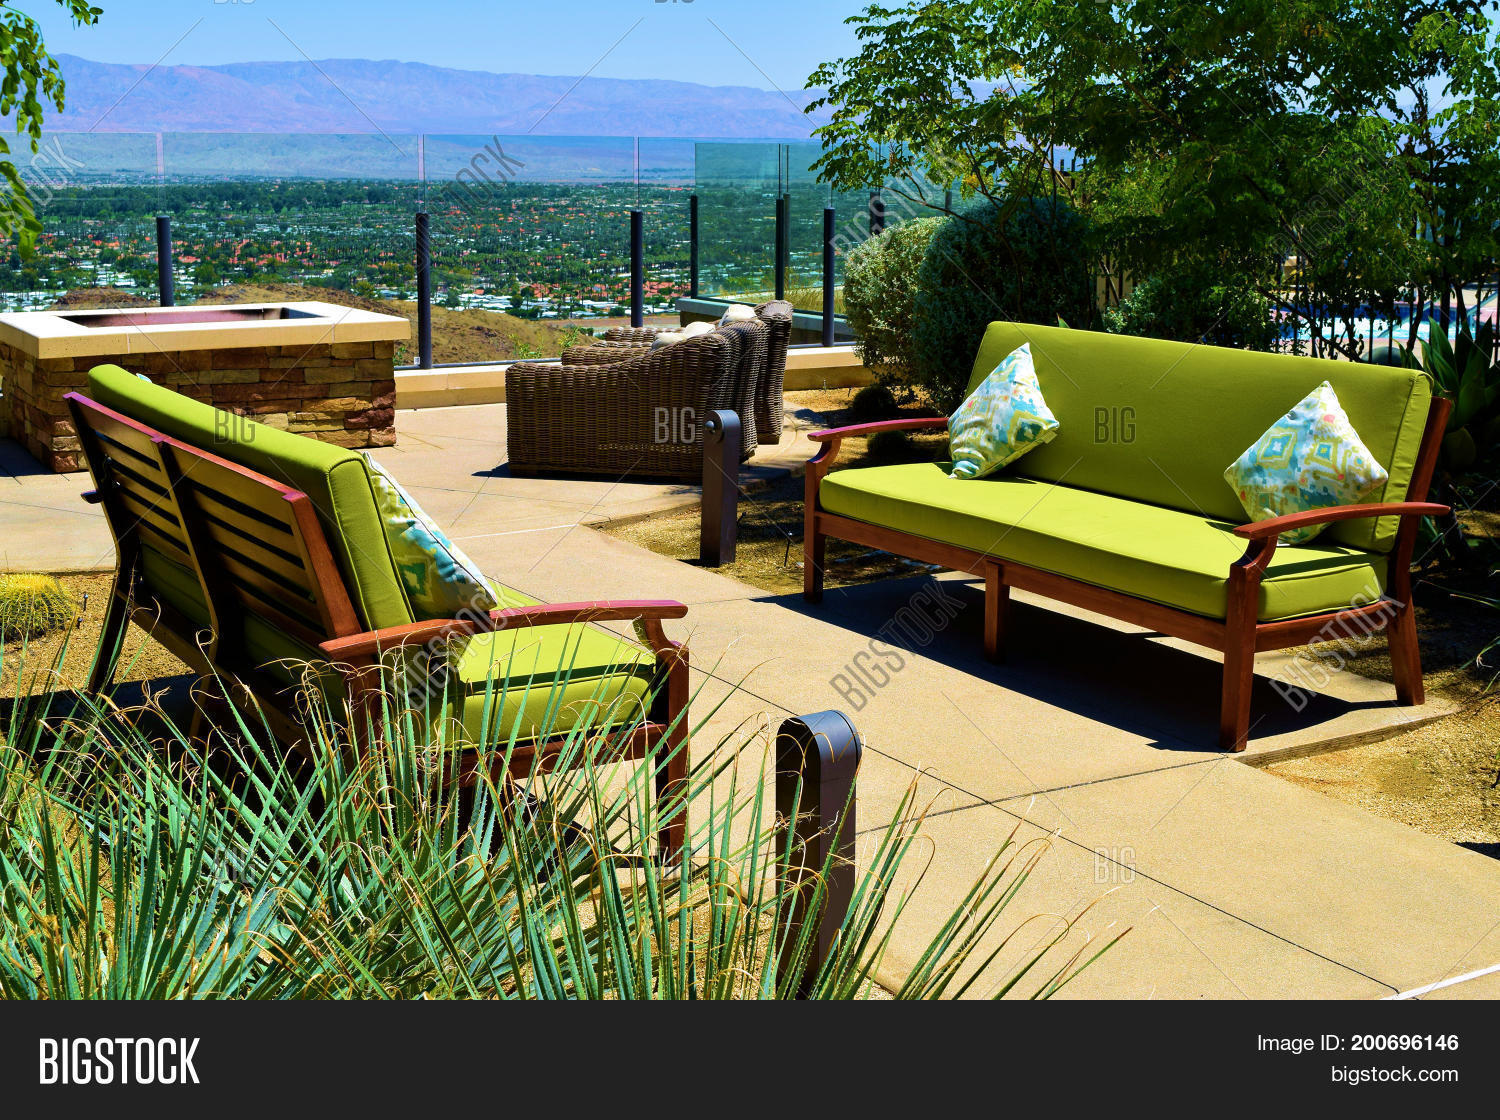 Contemporary style outdoor patio furniture including comfortable sofas with pillows at a residential garden overlooking the